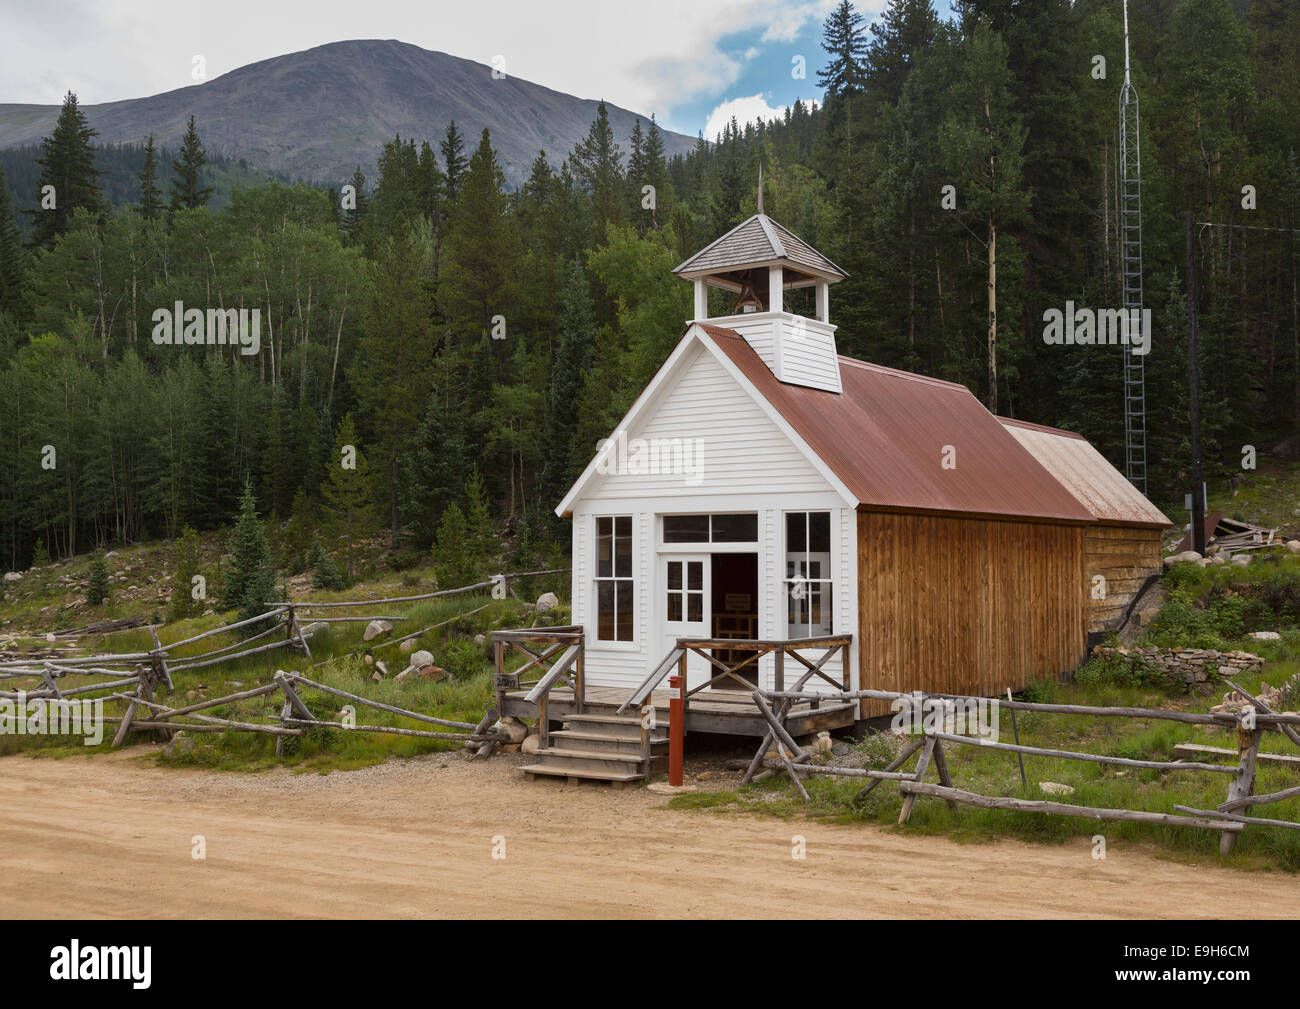 Town hall and museum rebuilt after fire in ghost town of St Elmo, Colorado, USA - Stock Image